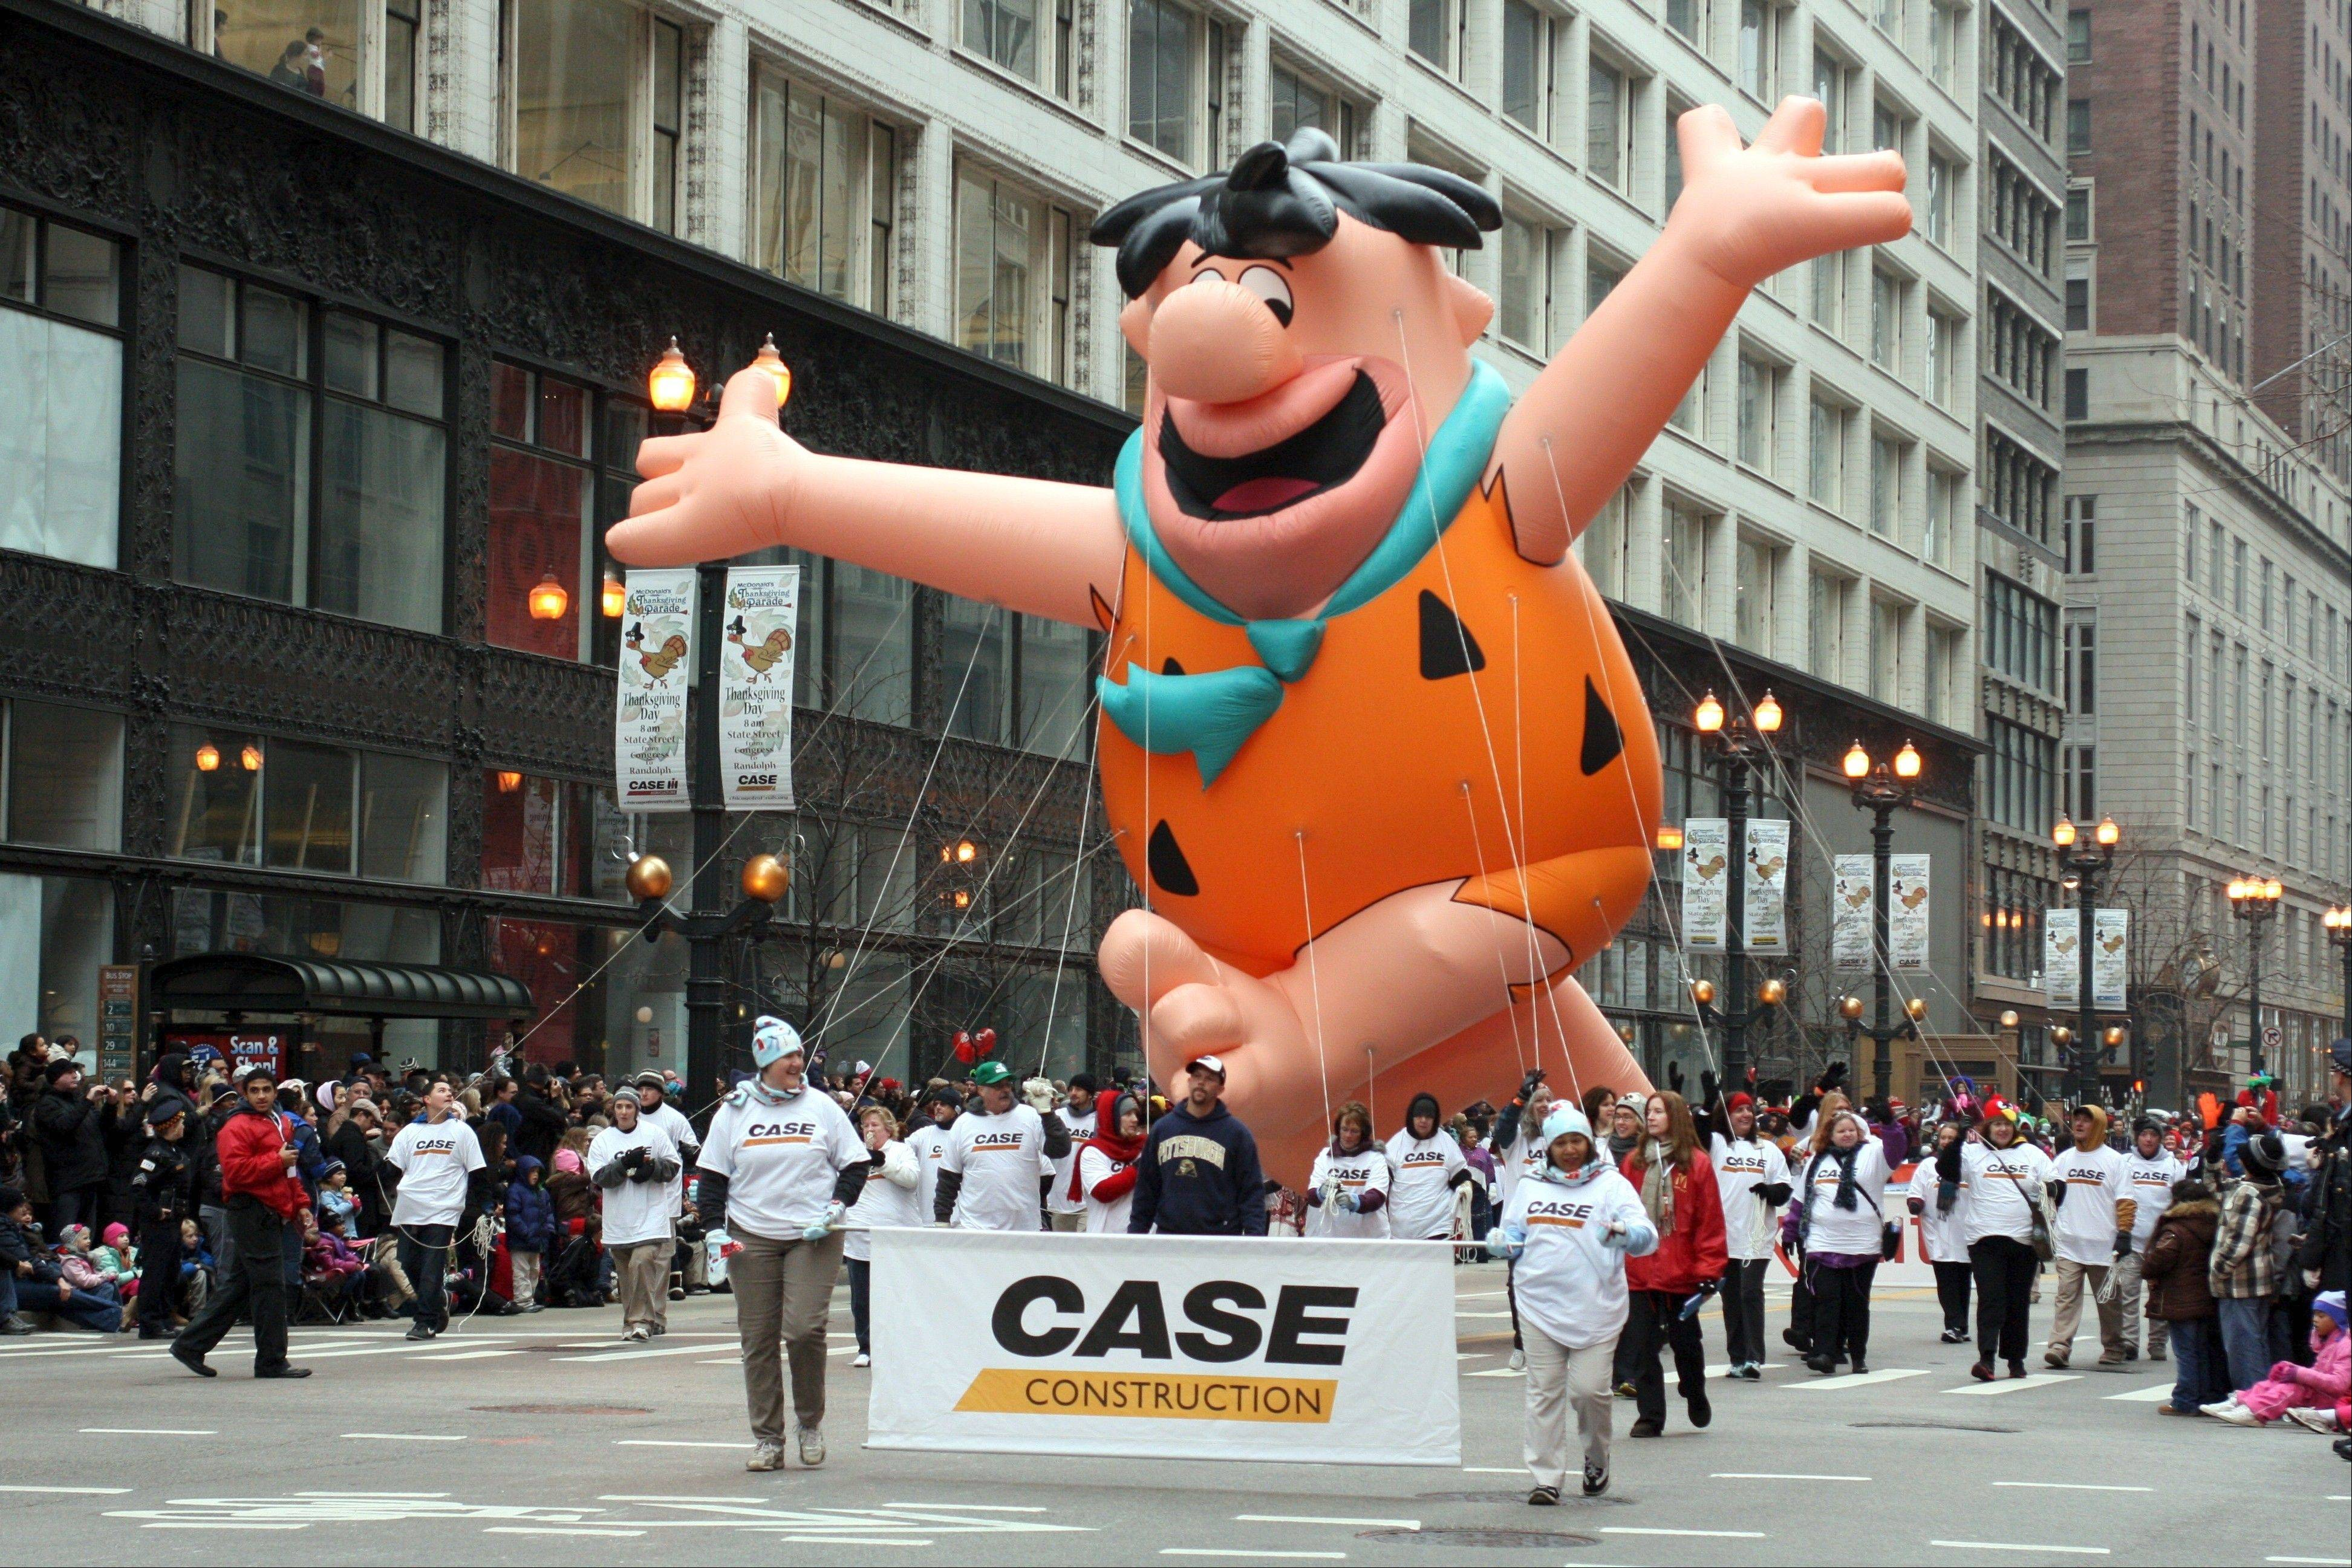 A contingent from Case Construction tend to an oversize balloon of Fred Flintstone in a previous edition of the McDonald's Thanksgiving Day Parade in Chicago.